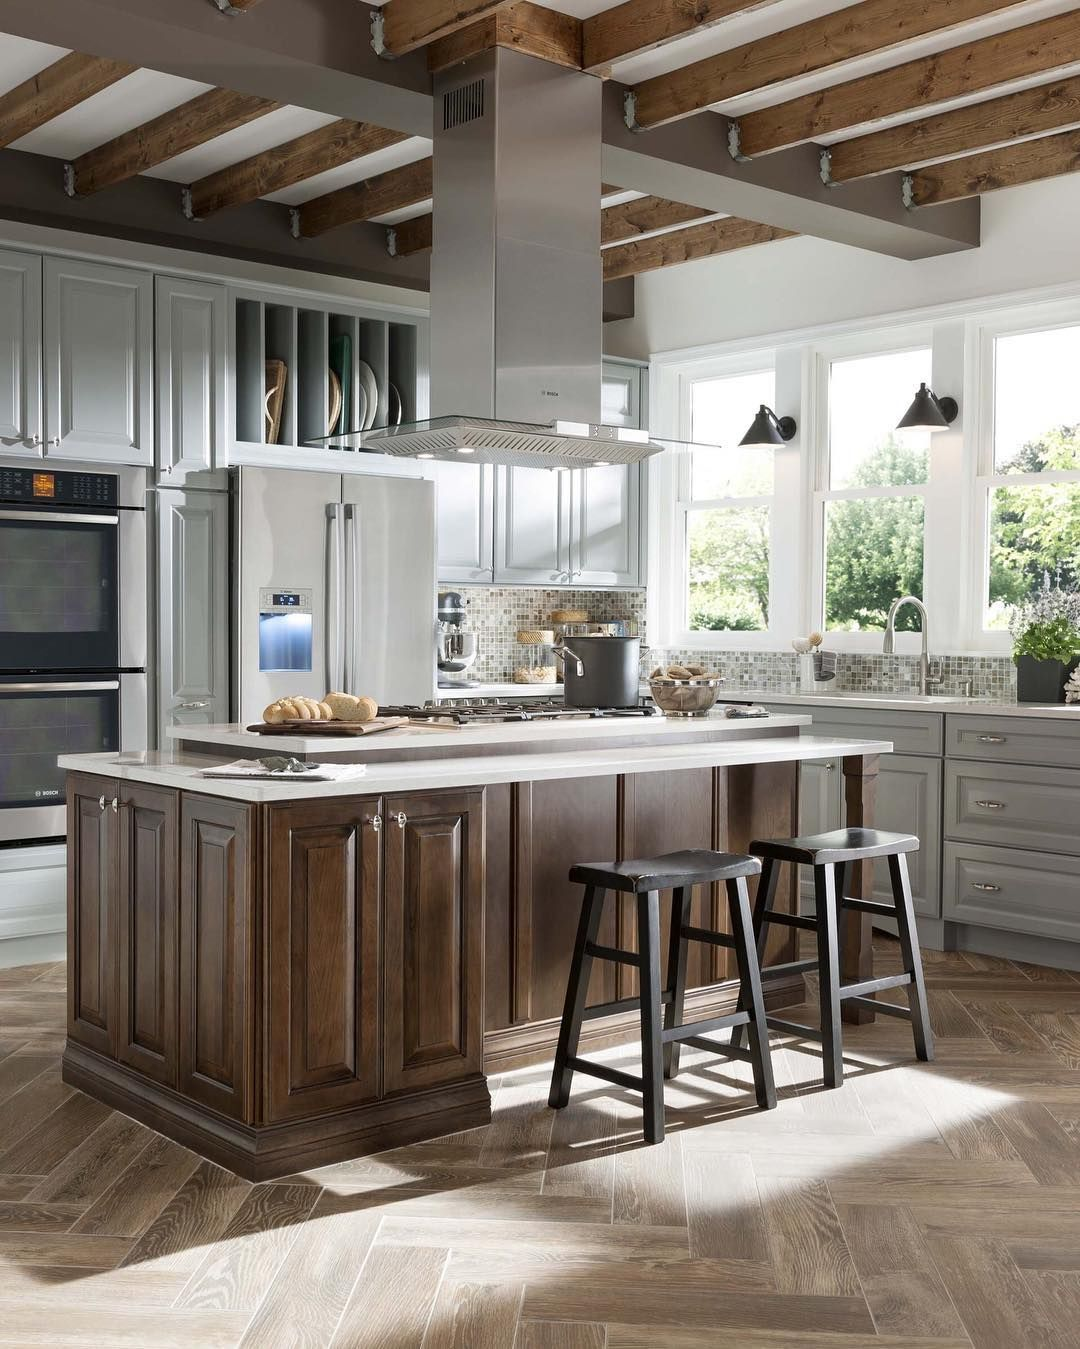 Kitchen Island Additions: Exposed Convertible Island Range Hood Is An Unique